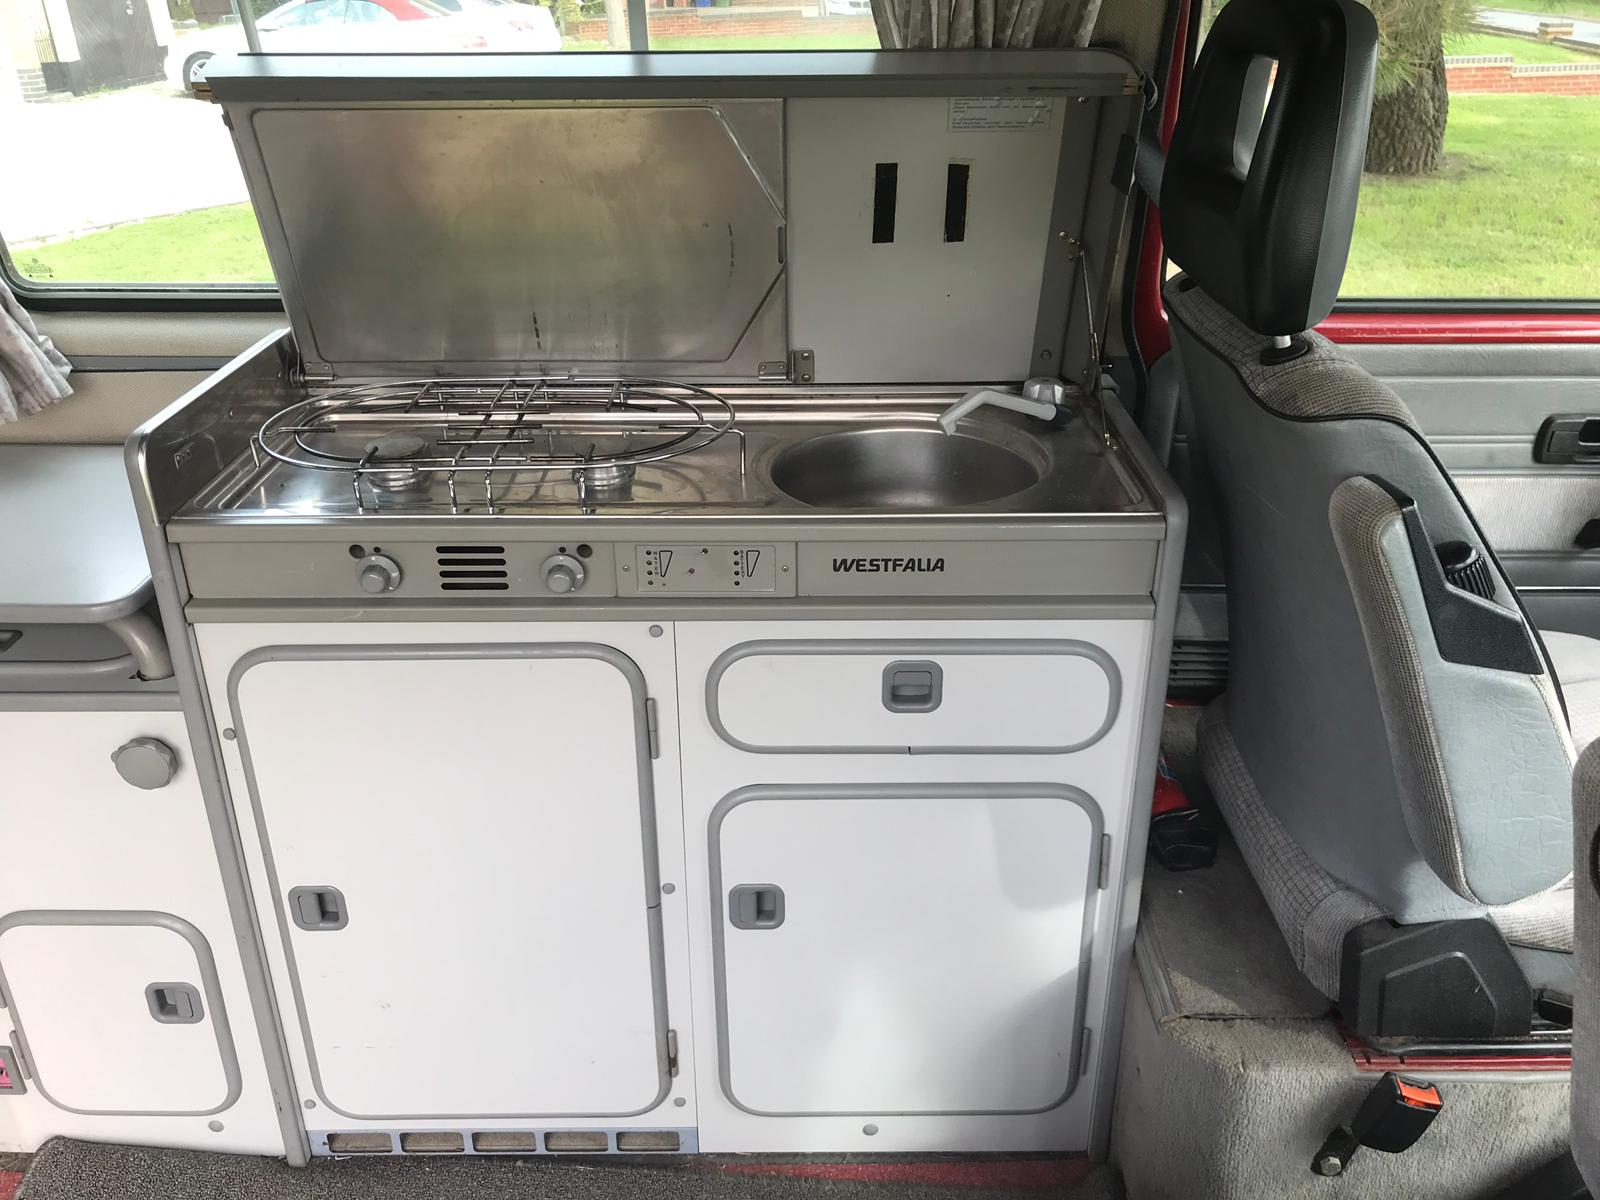 VW T25 westfalia campervan for sale esse